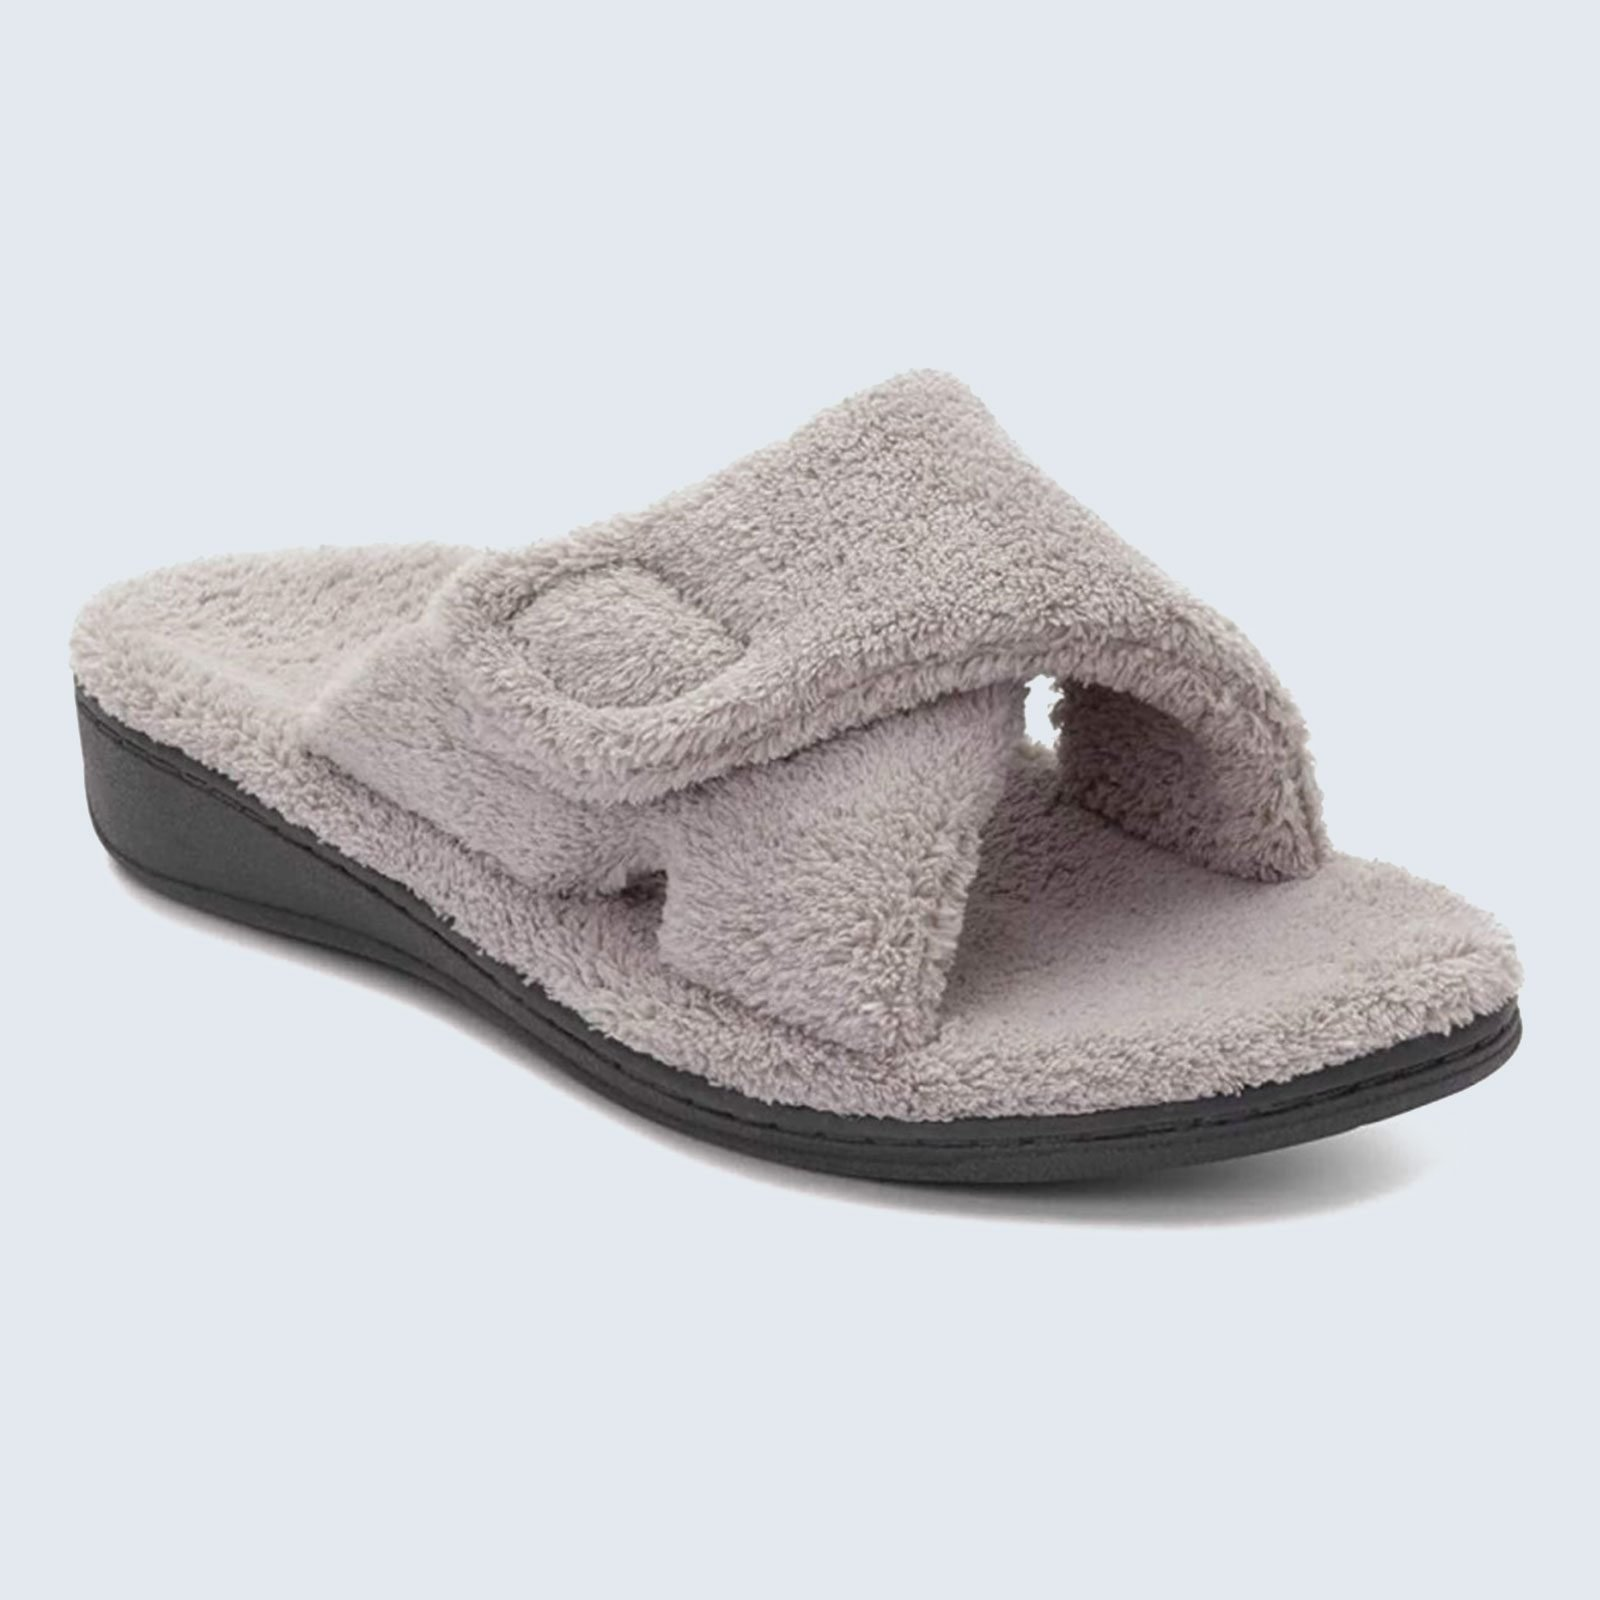 Slippers with the best support: Vionic Indulge Relax Slipper